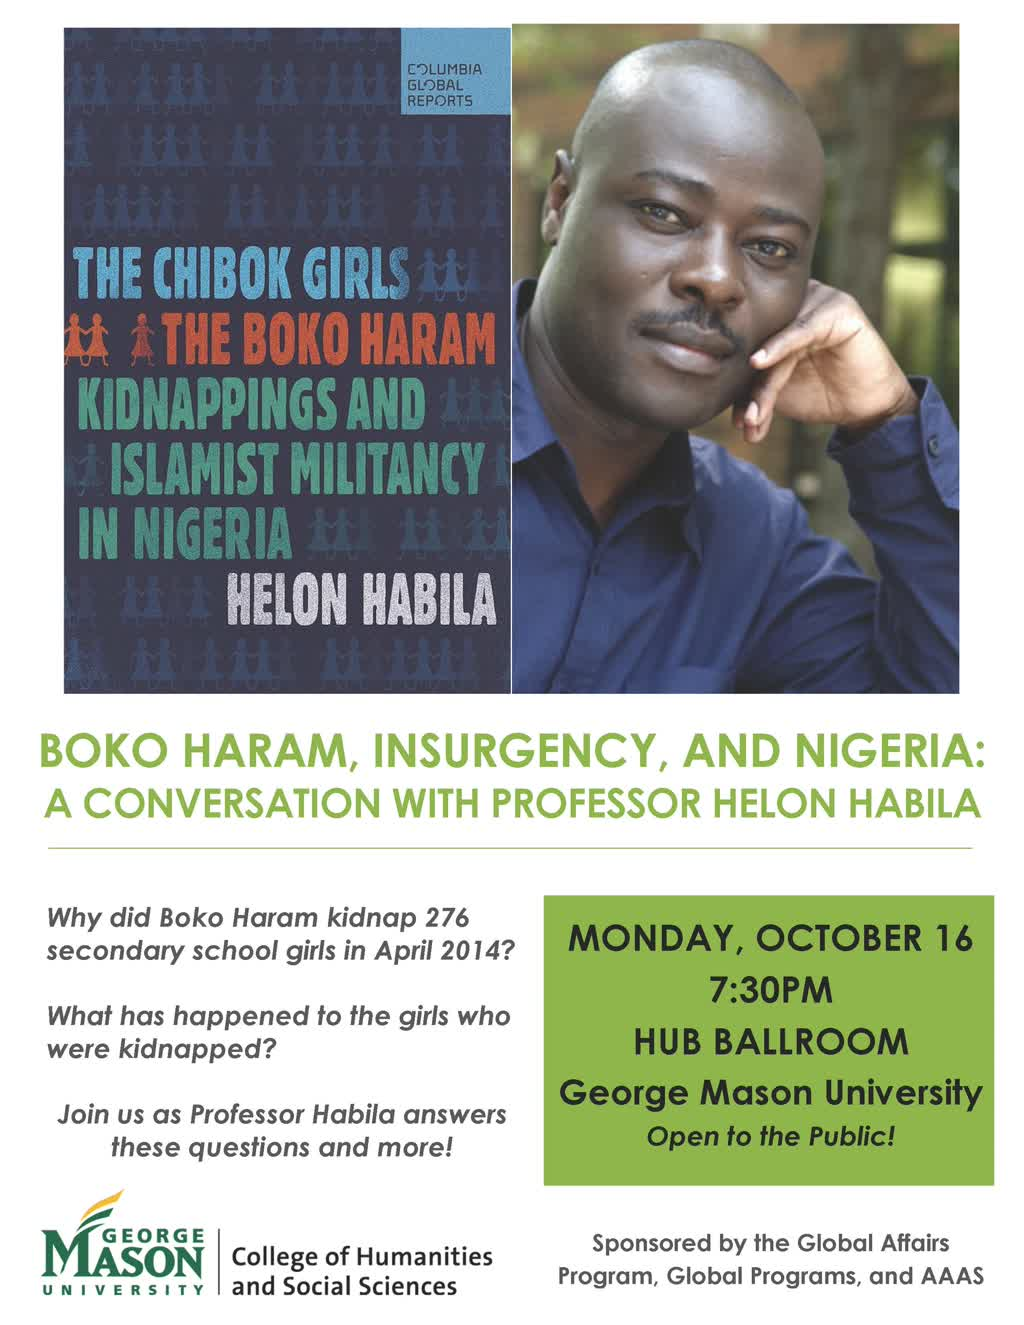 Information regarding Boko Haram, Insurgency, and Nigeria: A Conversation with Professor Helon Habila is as follows Create Your Own Tags: is #globalaffairs #globalprograms #aaas and Start date (when you would like your content to be posted) is September 16 2017 and End Date  (when you would like your content to be removed from the screens) is October 16 2017 and Name of Ad/Event is Boko Haram, Insurgency, and Nigeria: A Conversation with Professor Helon Habila and File is Browse and Name is Destany Martin and Email is GLOA@GMU.EDU and Group Name is Global Affairs and File Name is Habila_Event_Flyer_comp.jpg and Affiliation is Mason Department and Panel for your ad to be displayed is Side and